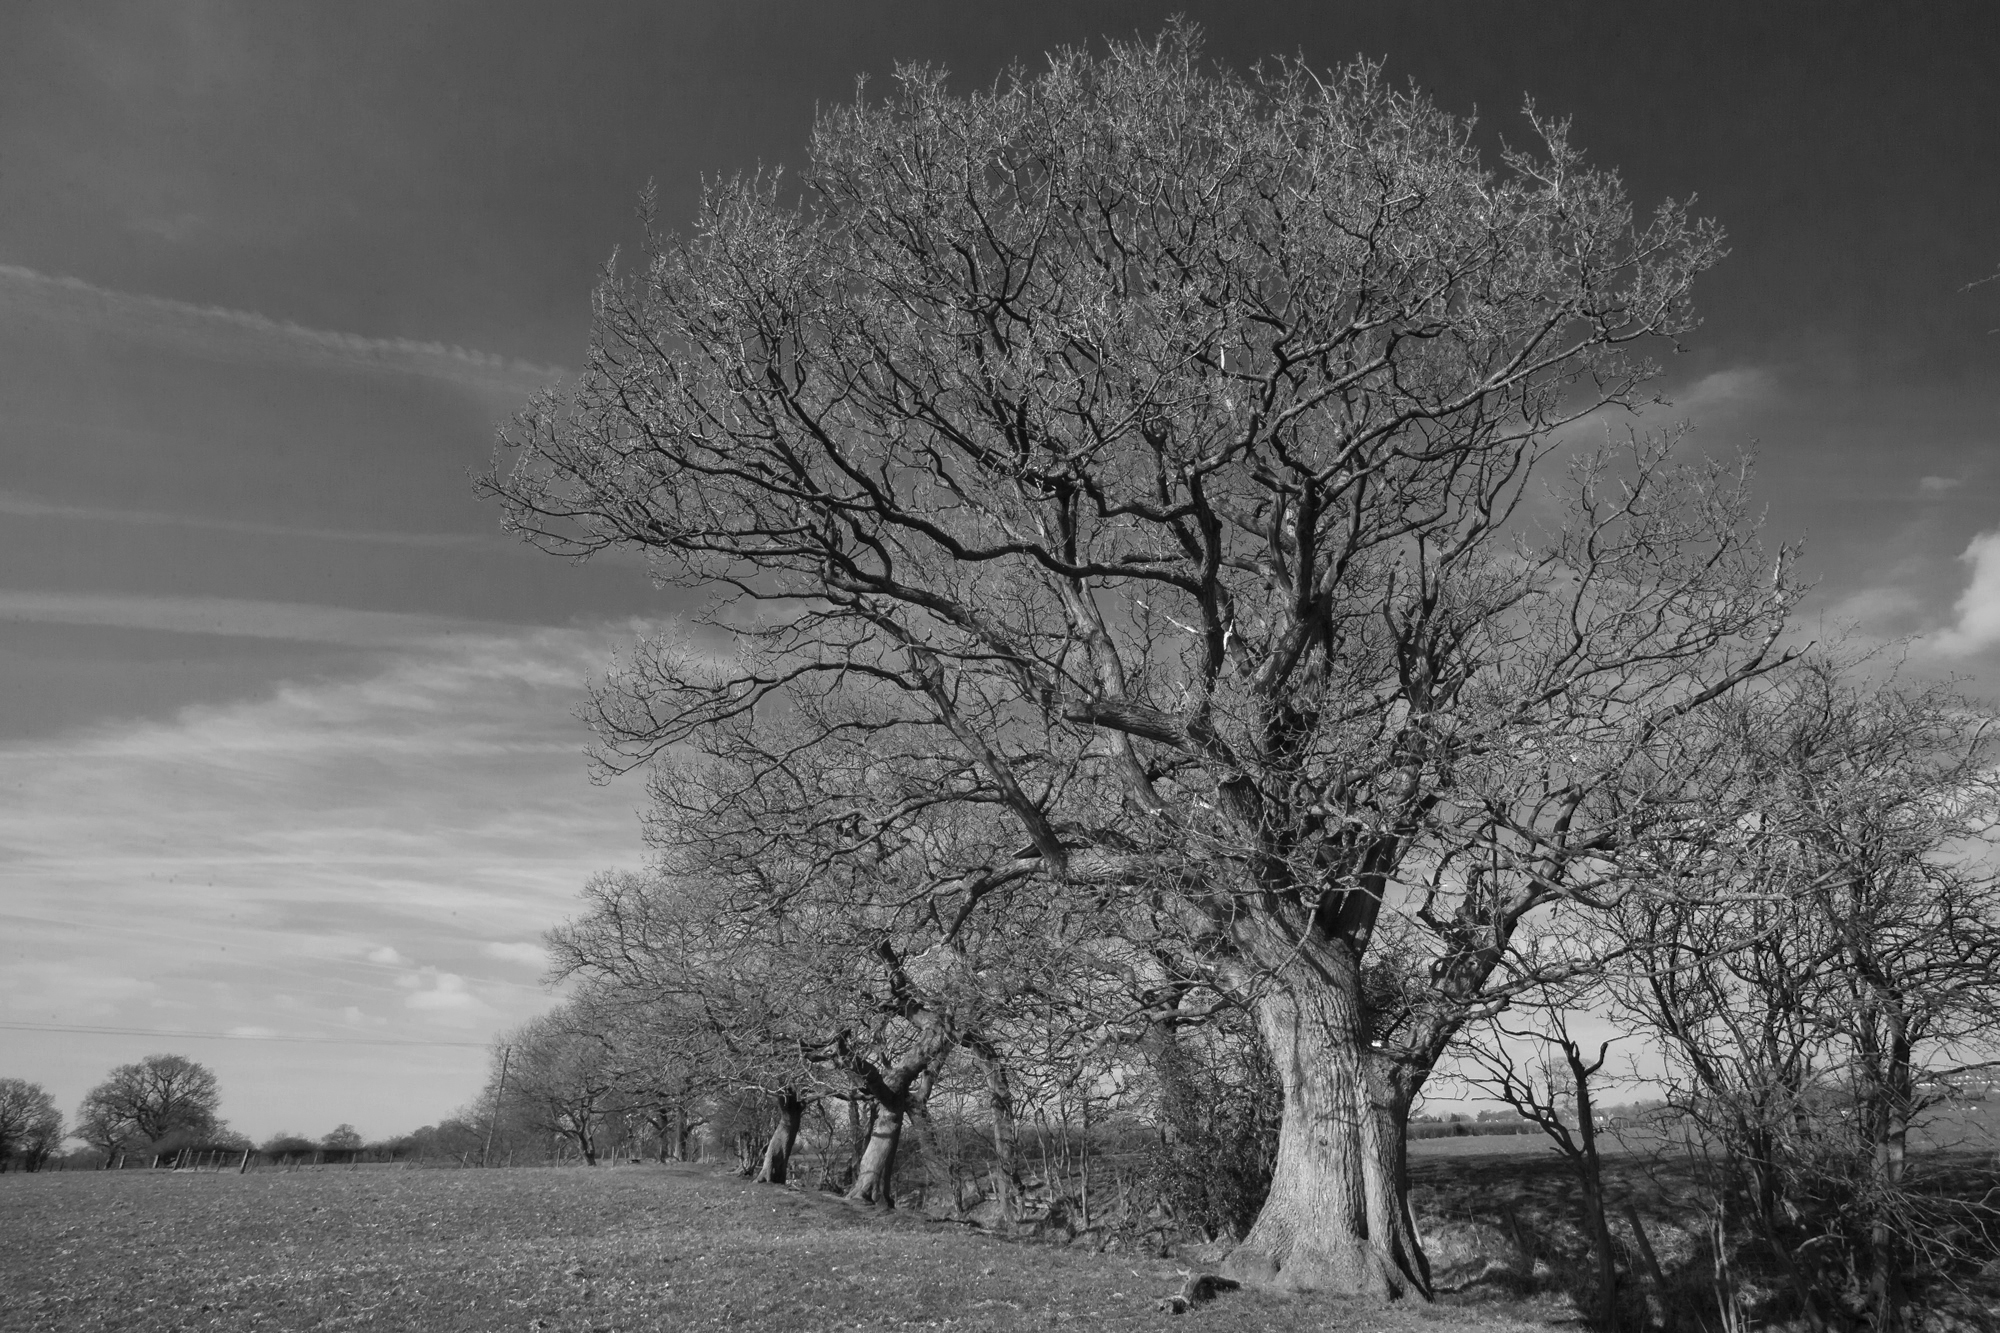 A line of old oak trees in the Ribble Valley near Ribchester.